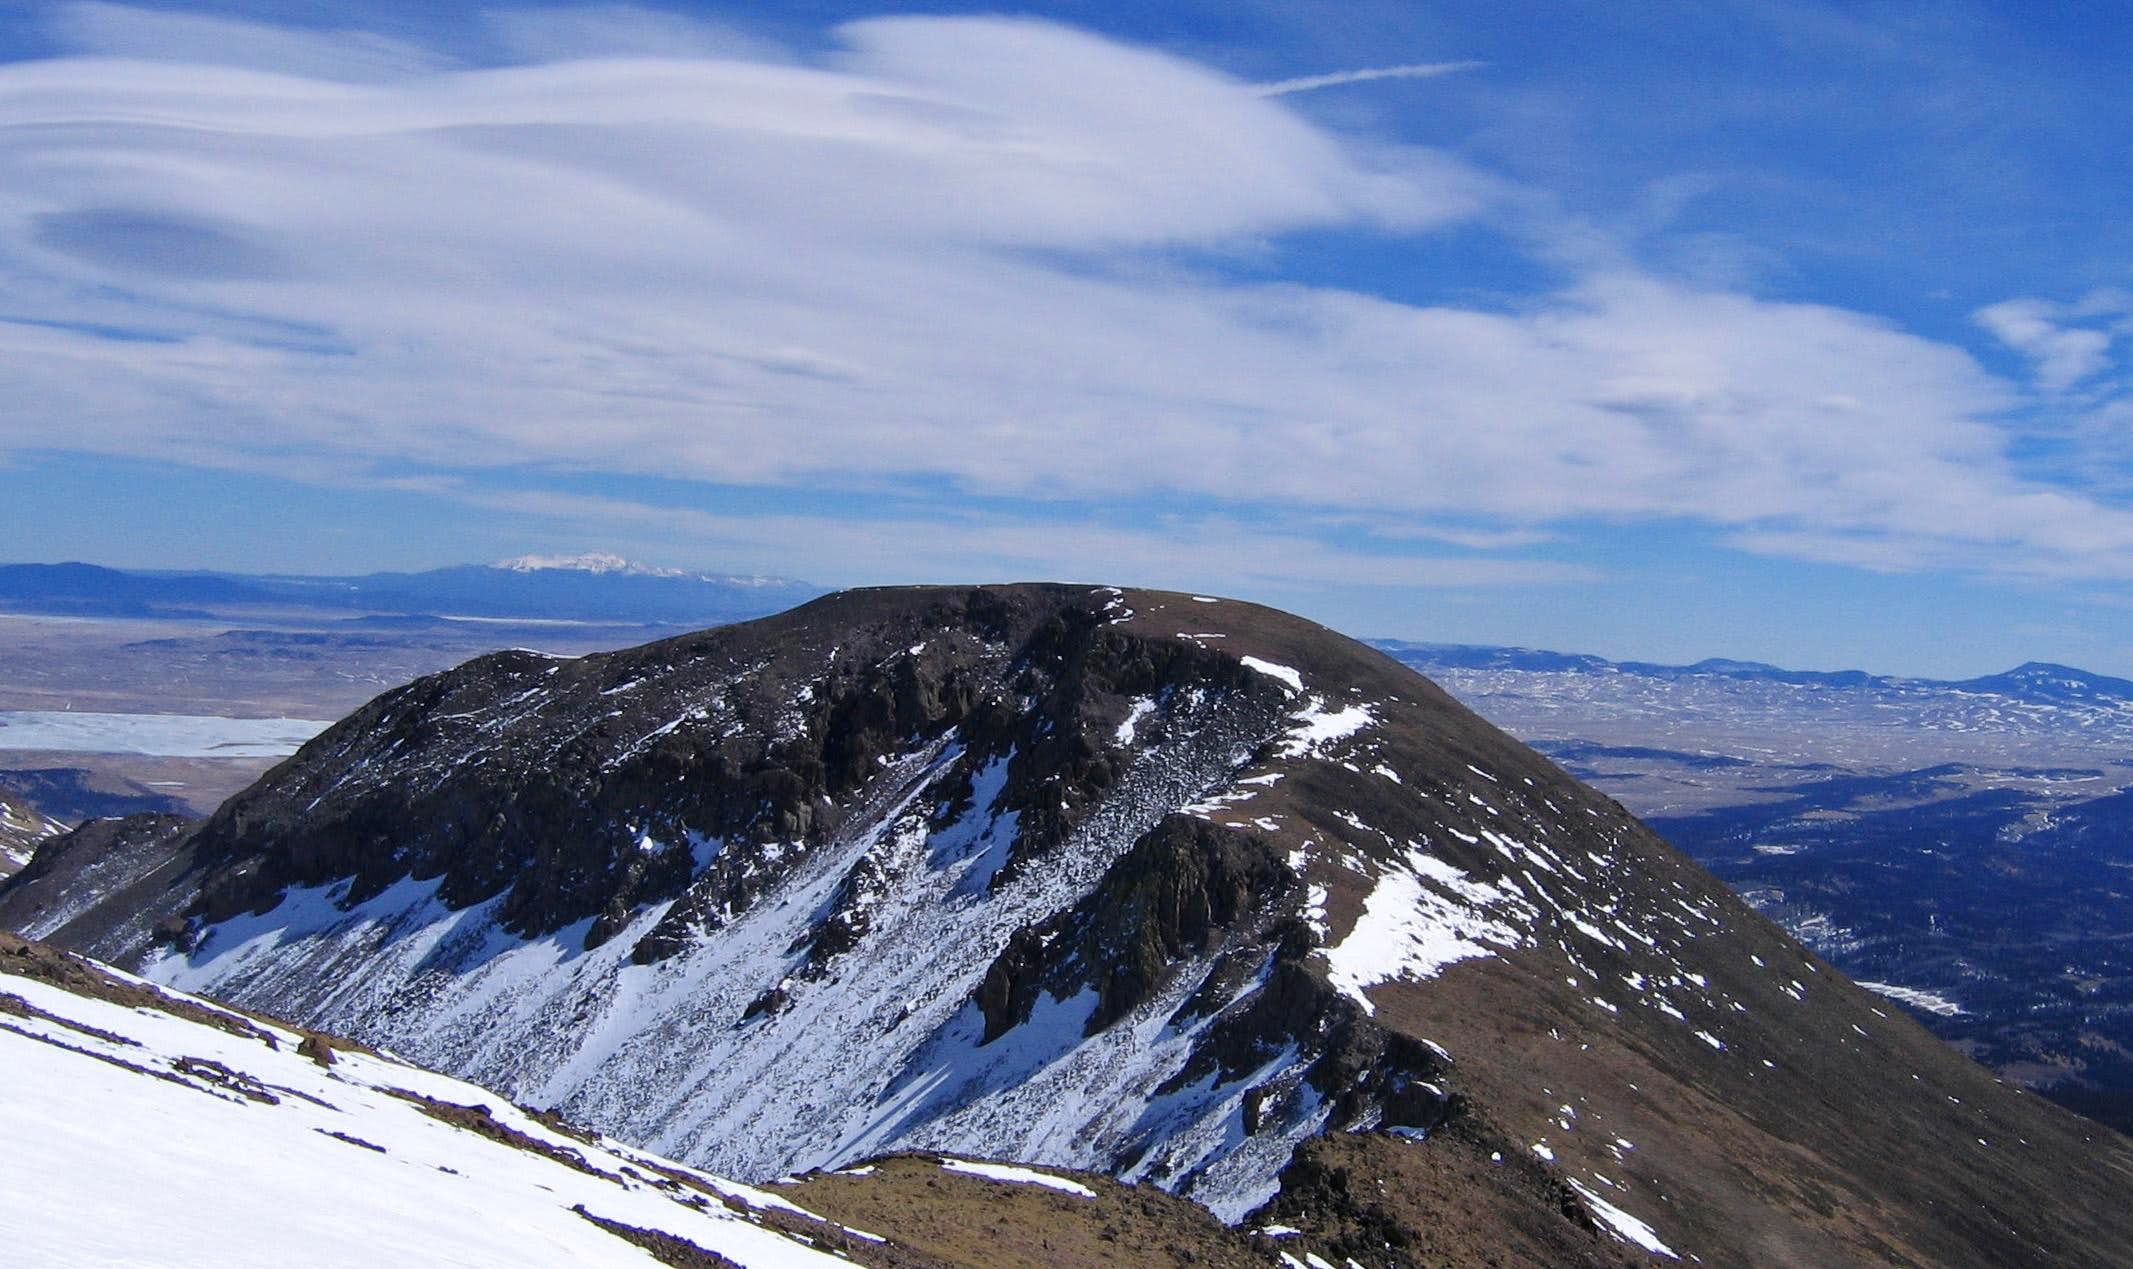 East Buffalo Peak